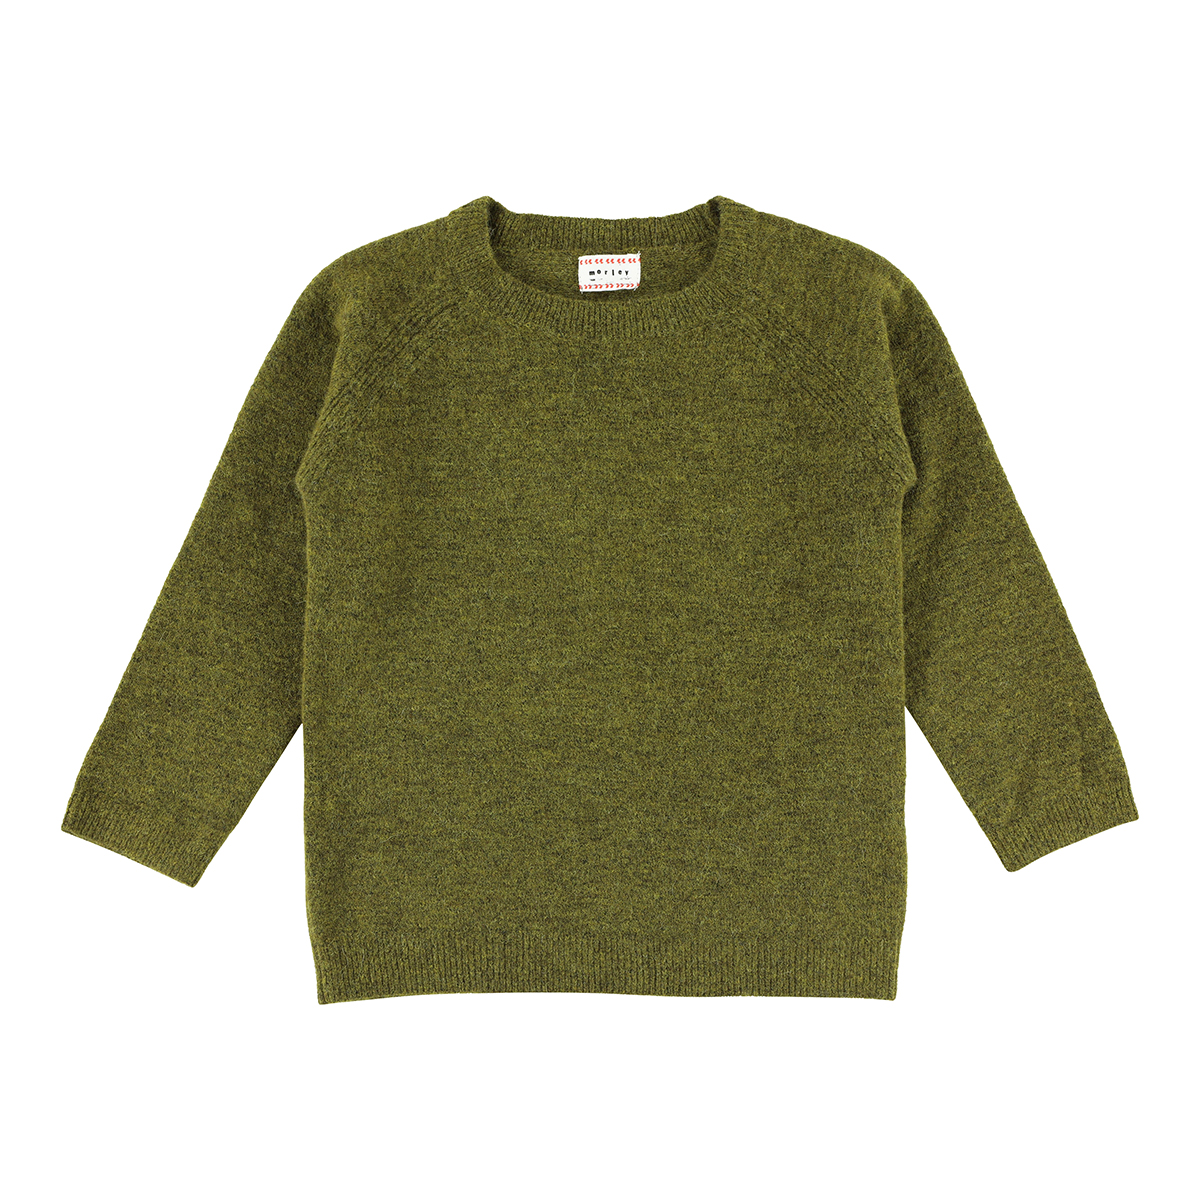 Morley Olive Green Sweater